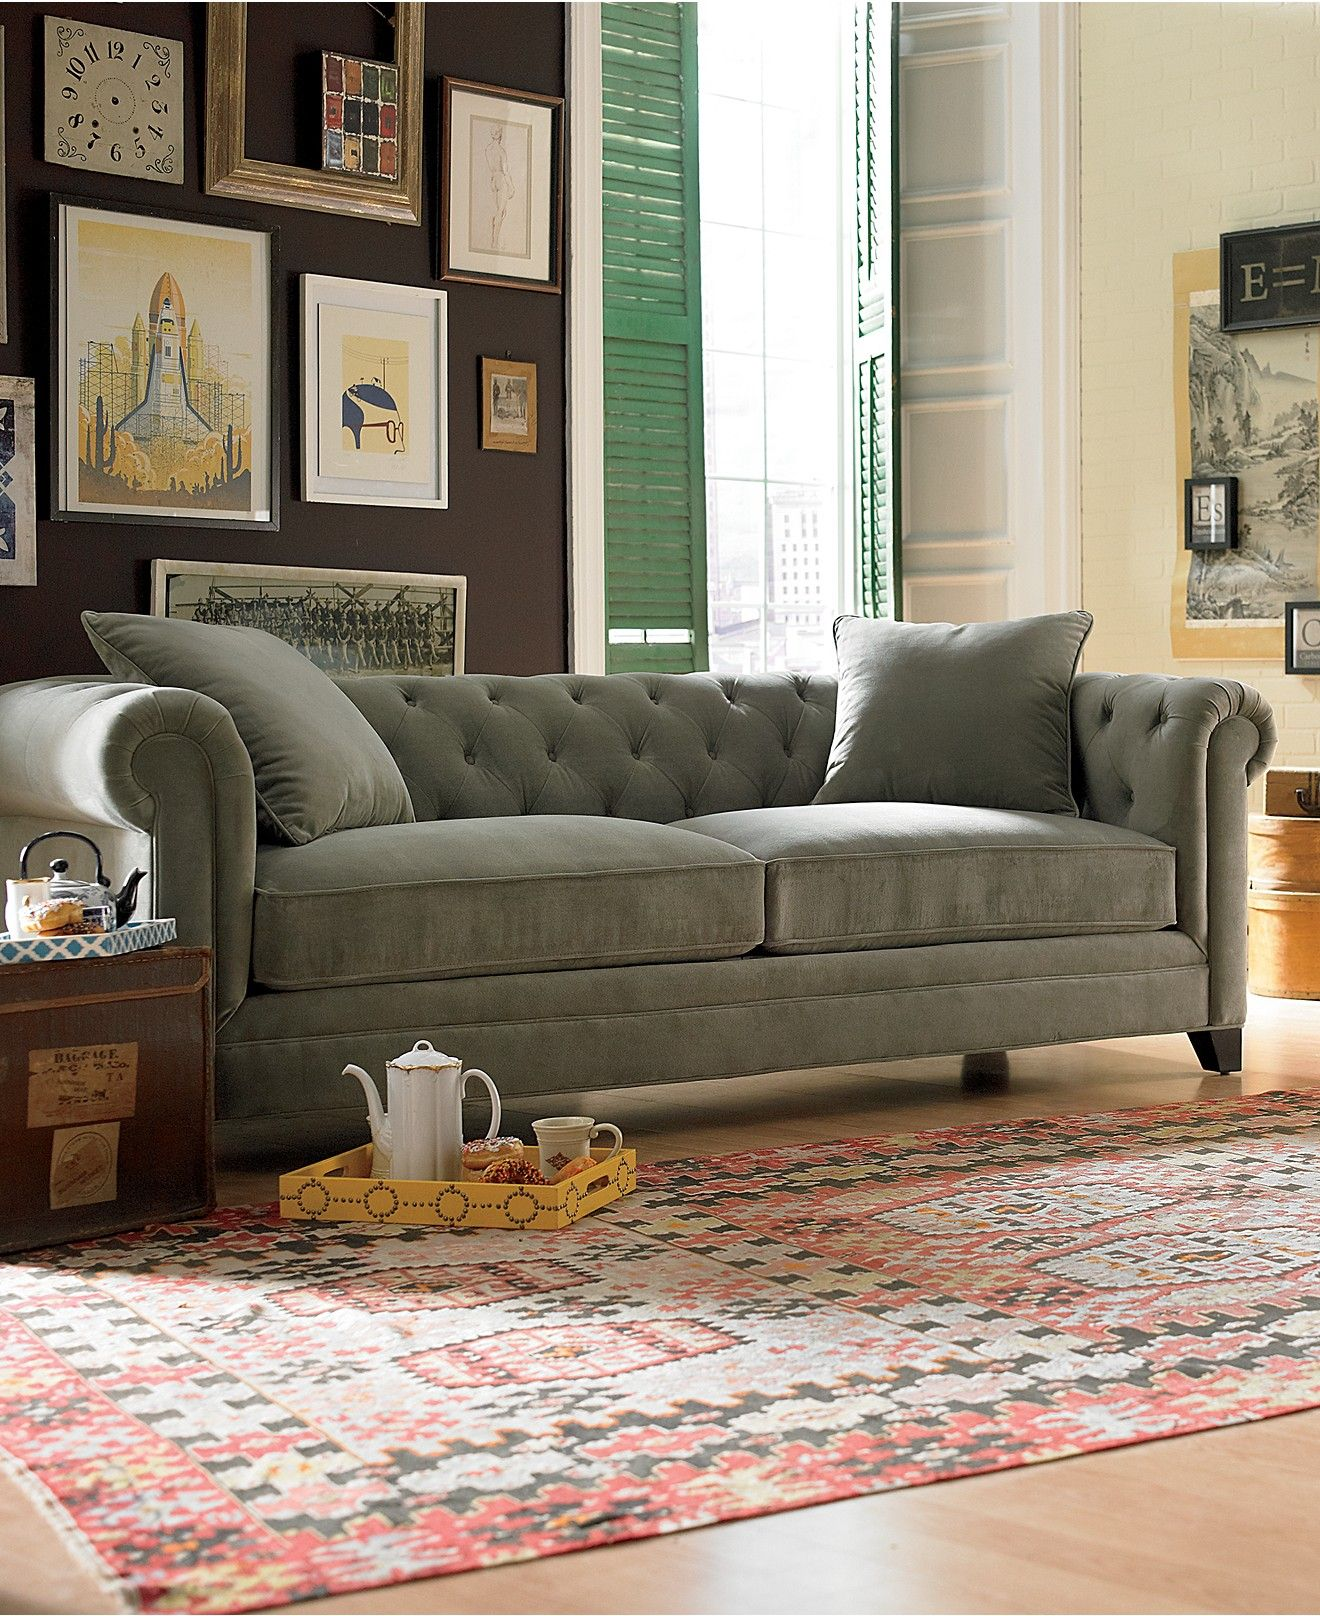 Saybridge 92 Fabric Sofa Created For Macy S Muebles Vintage